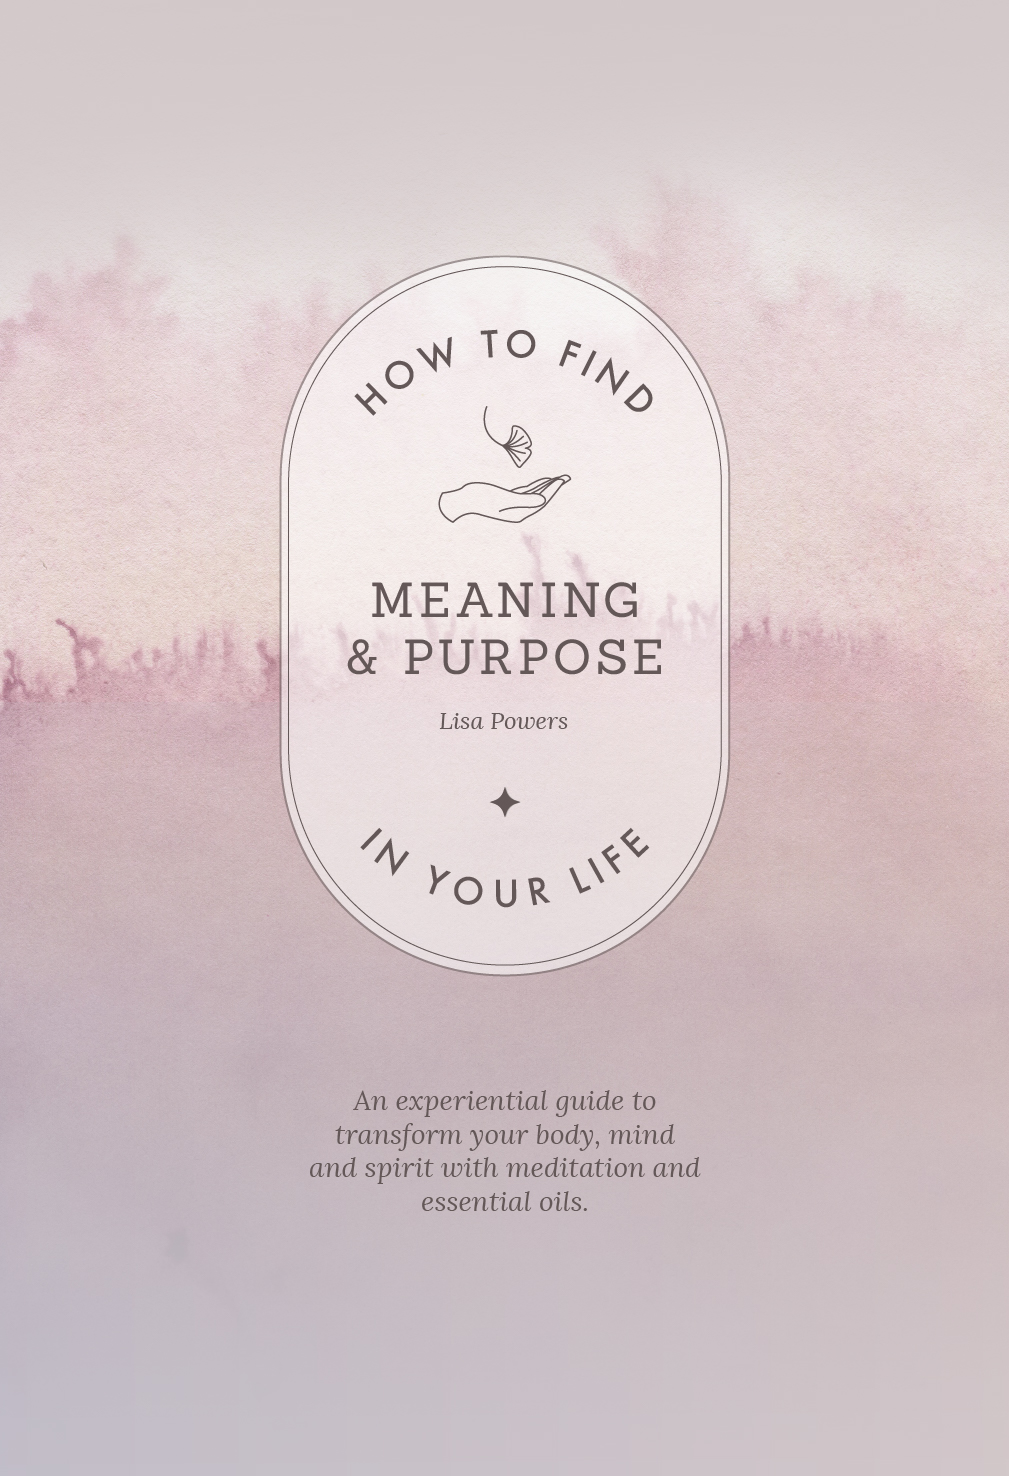 how to find meaning and purpose book